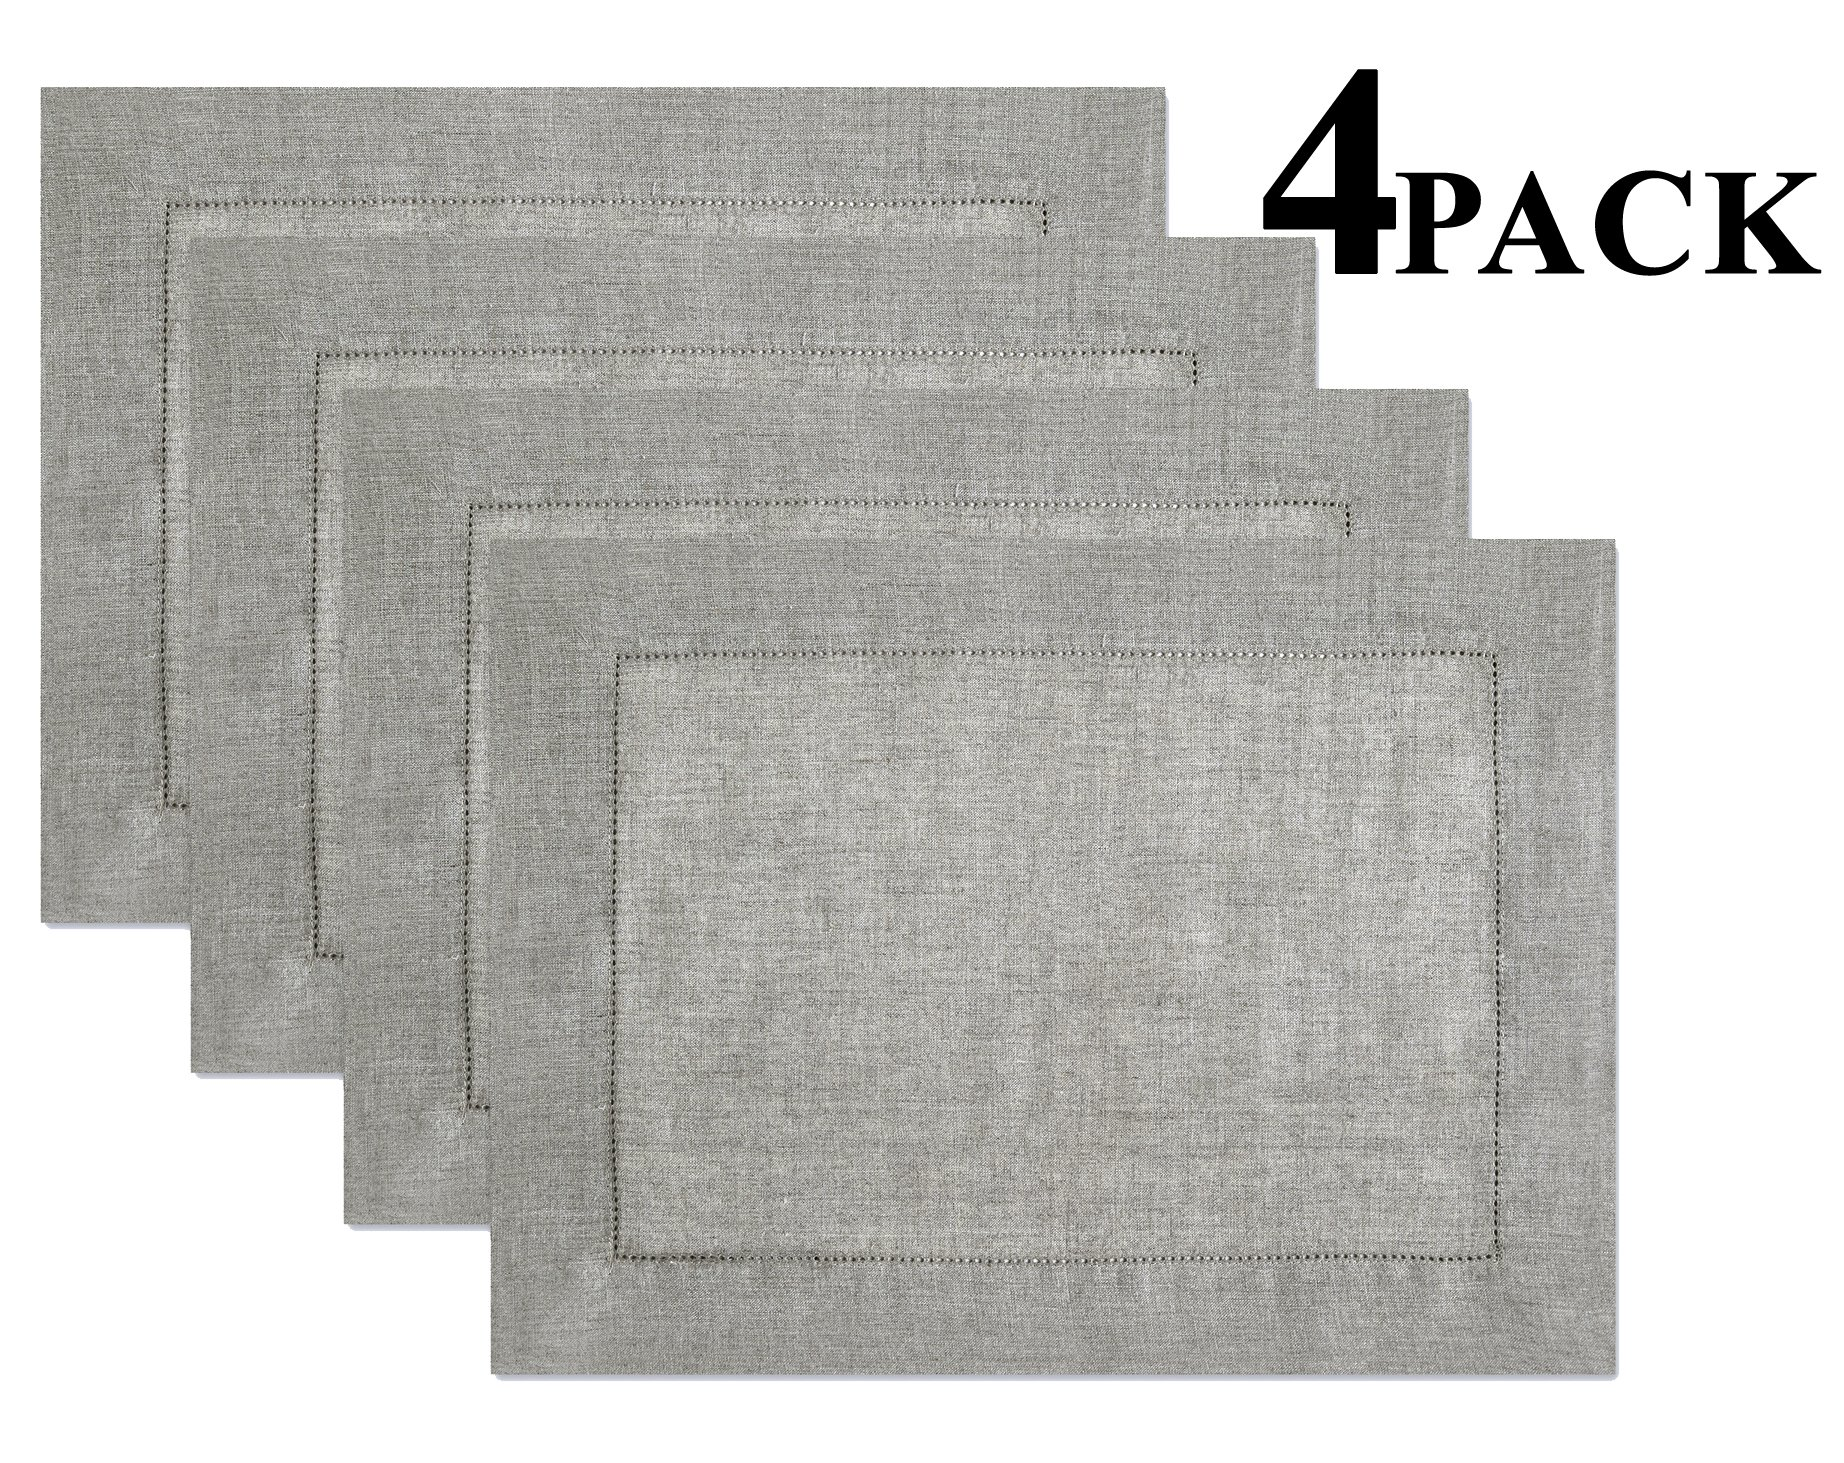 100% Linen Hemstitch Placemats - (Set of 4) Size 14x19 Charcoal - Hand Crafted and Hand Stitched Placemats with Hemstitch detailing. The pure Linen fabric works well in both casual and formal settings